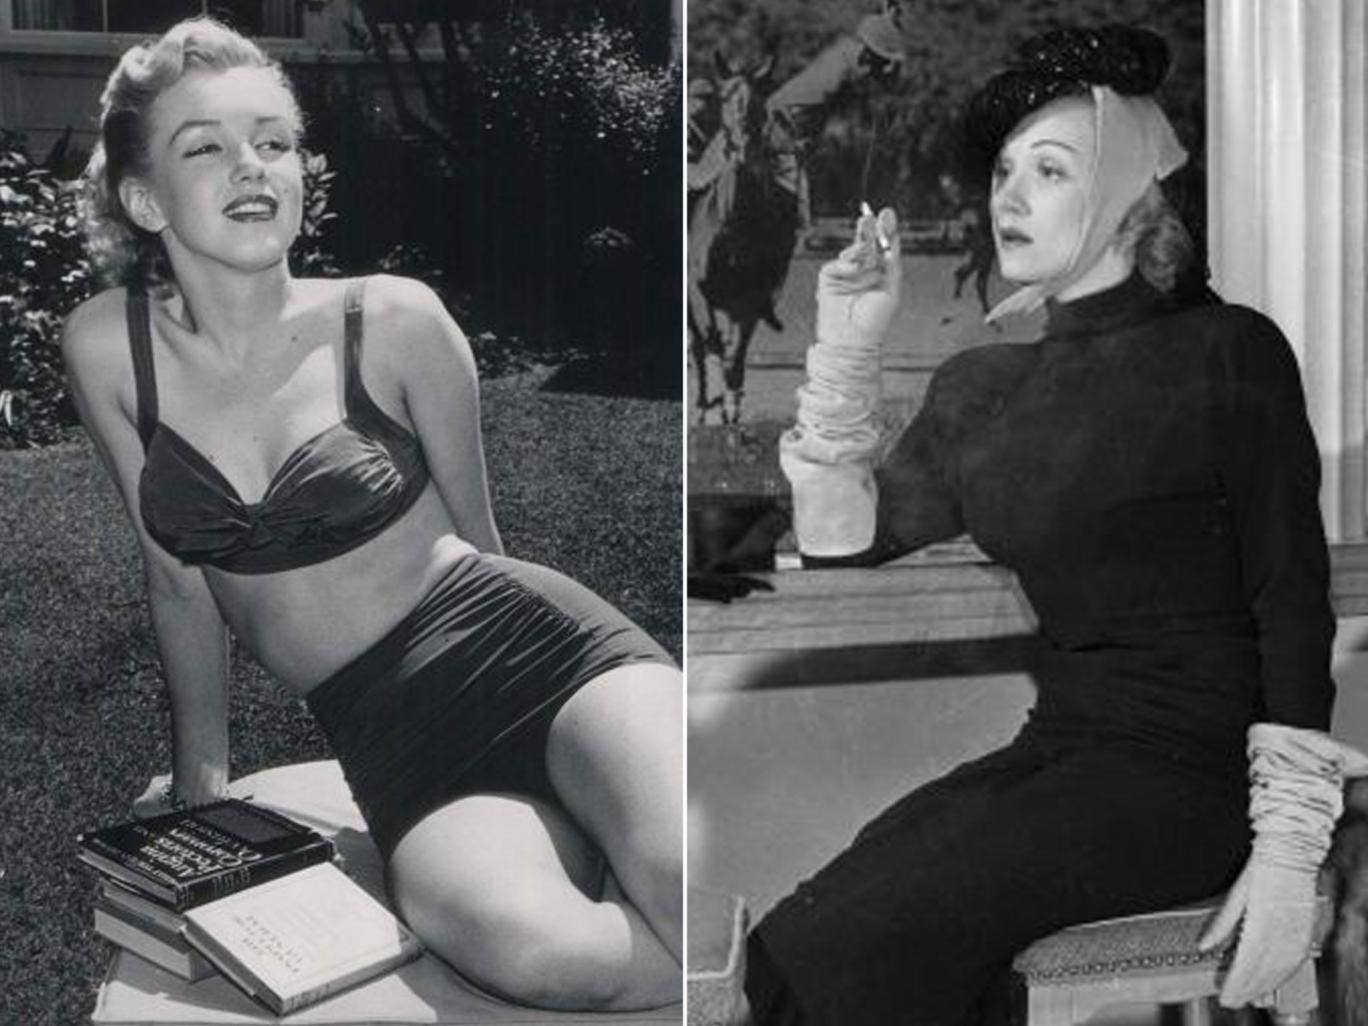 Travel takes on a new meaning when you follow in the footsteps of film stars: Marylin Monroe, left, and Marlene Dietrich